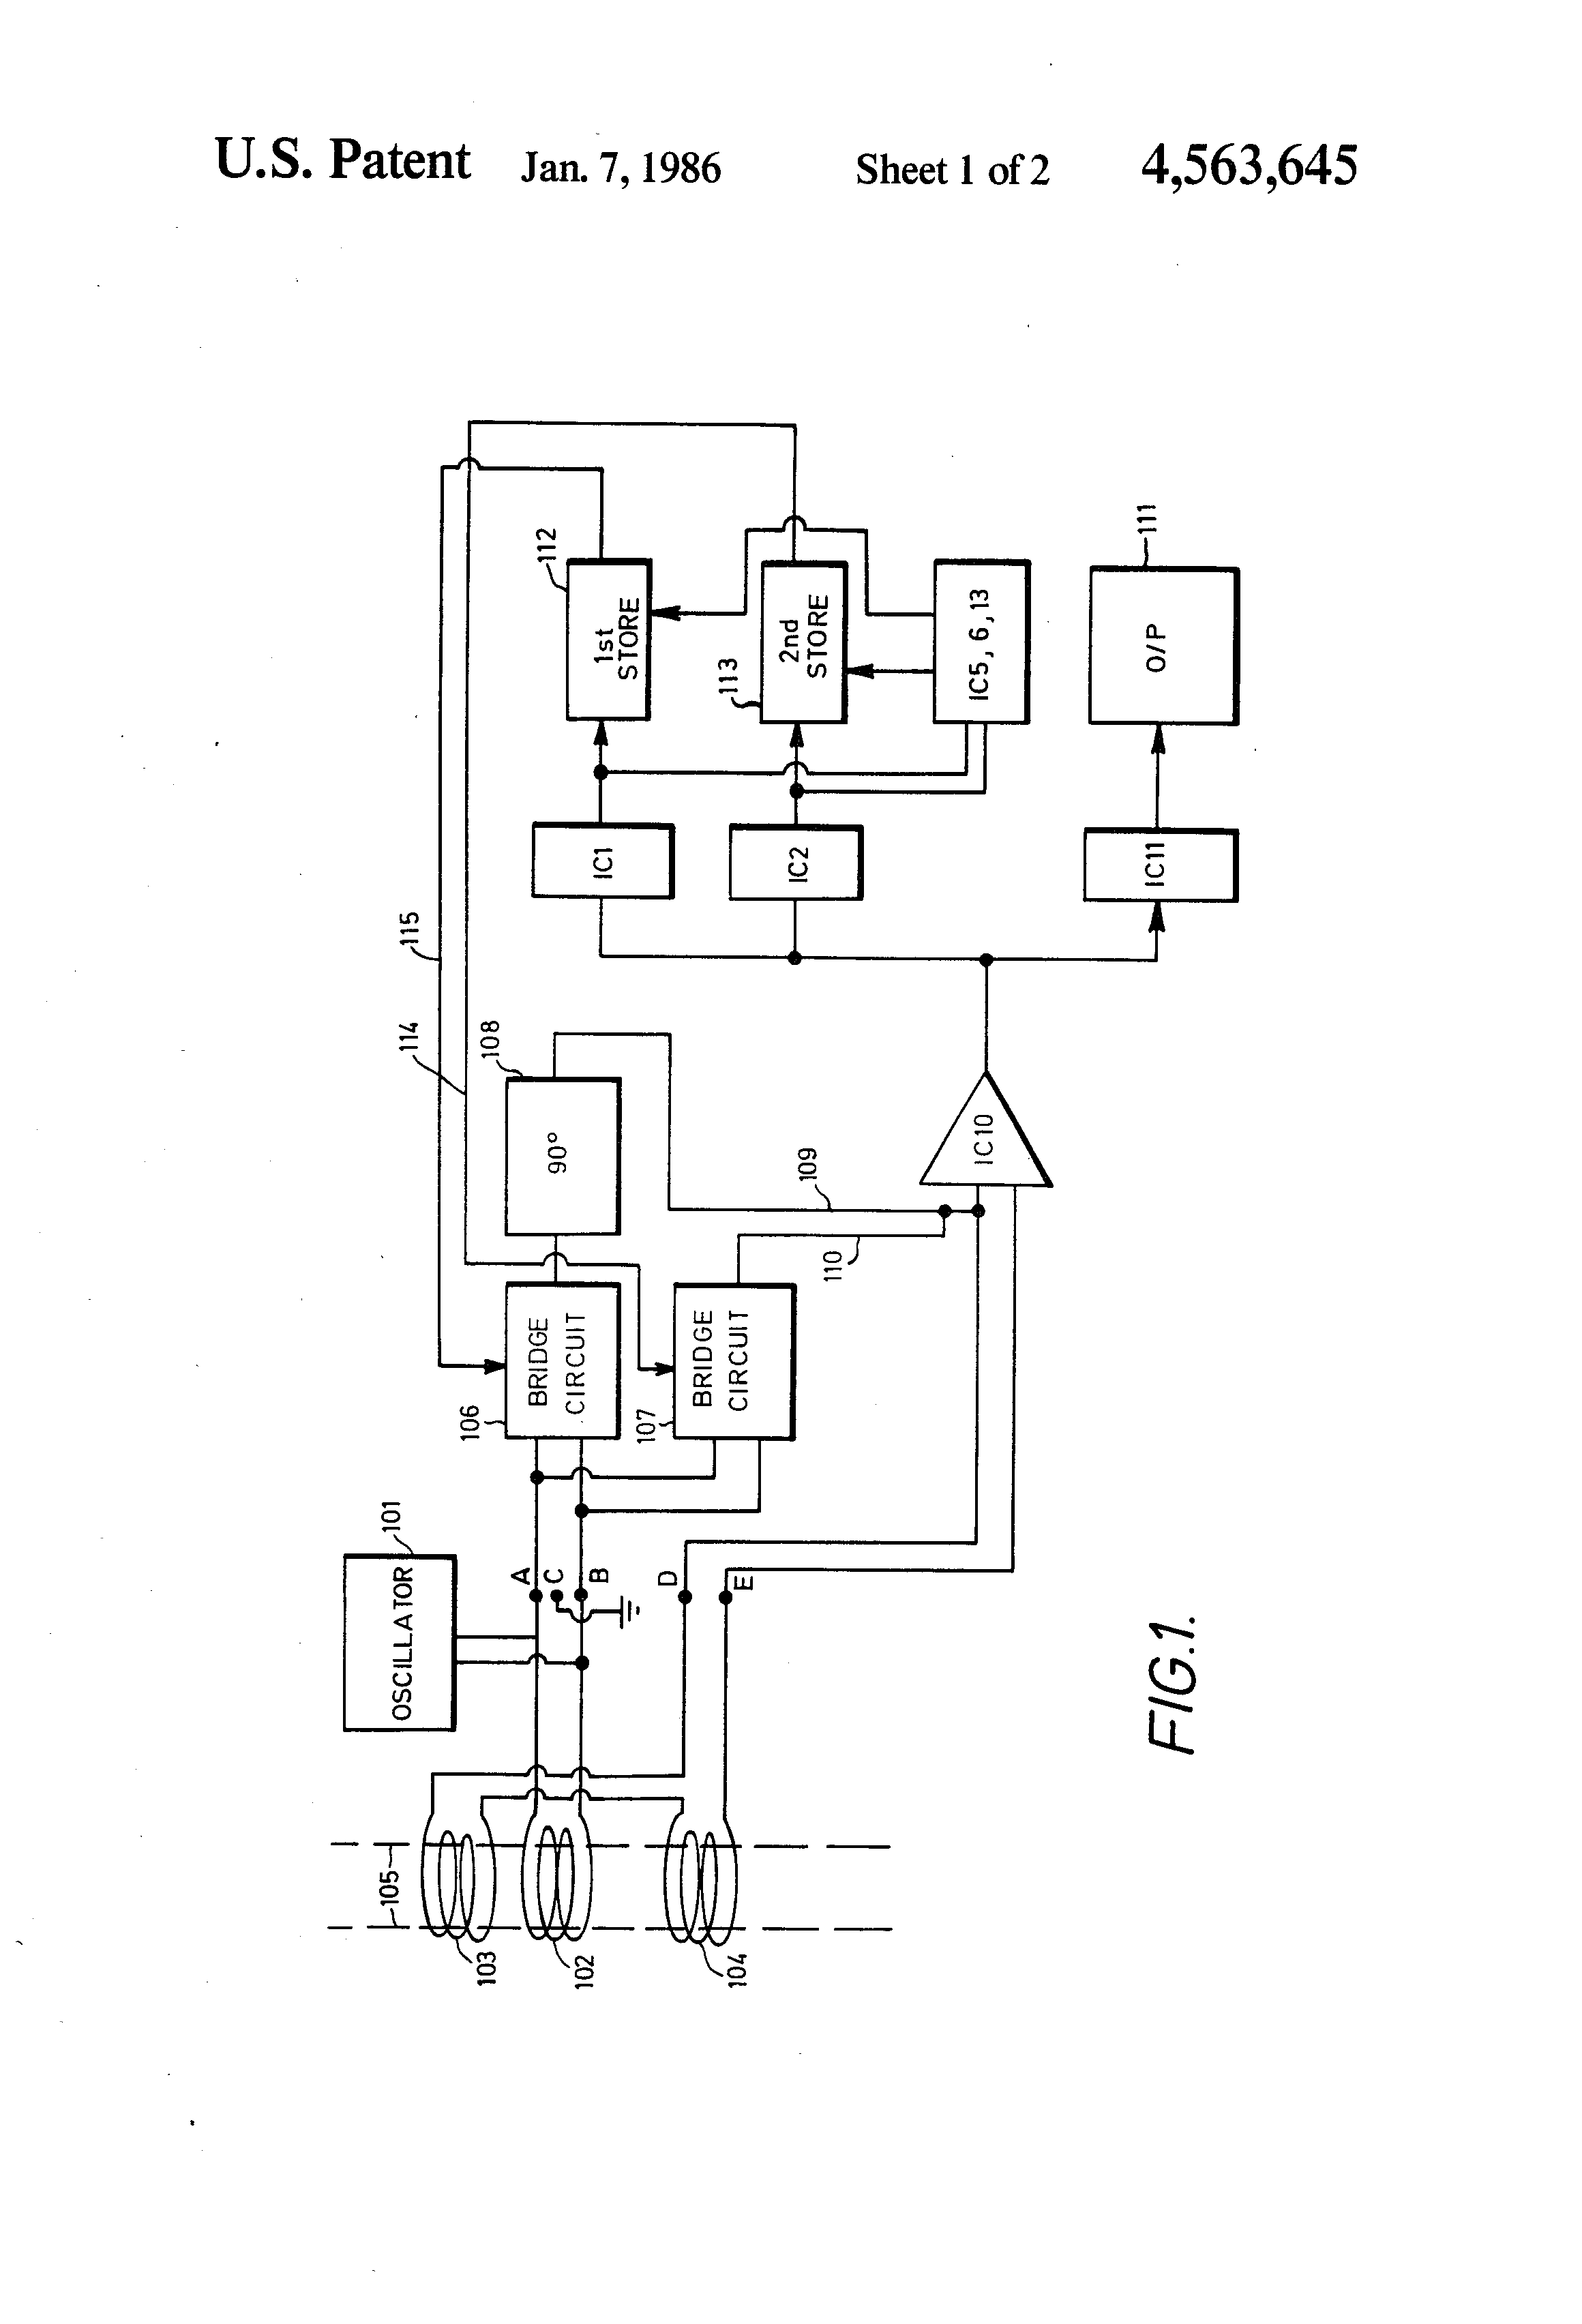 patent us inductively balanced oscillatory coil current patent drawing